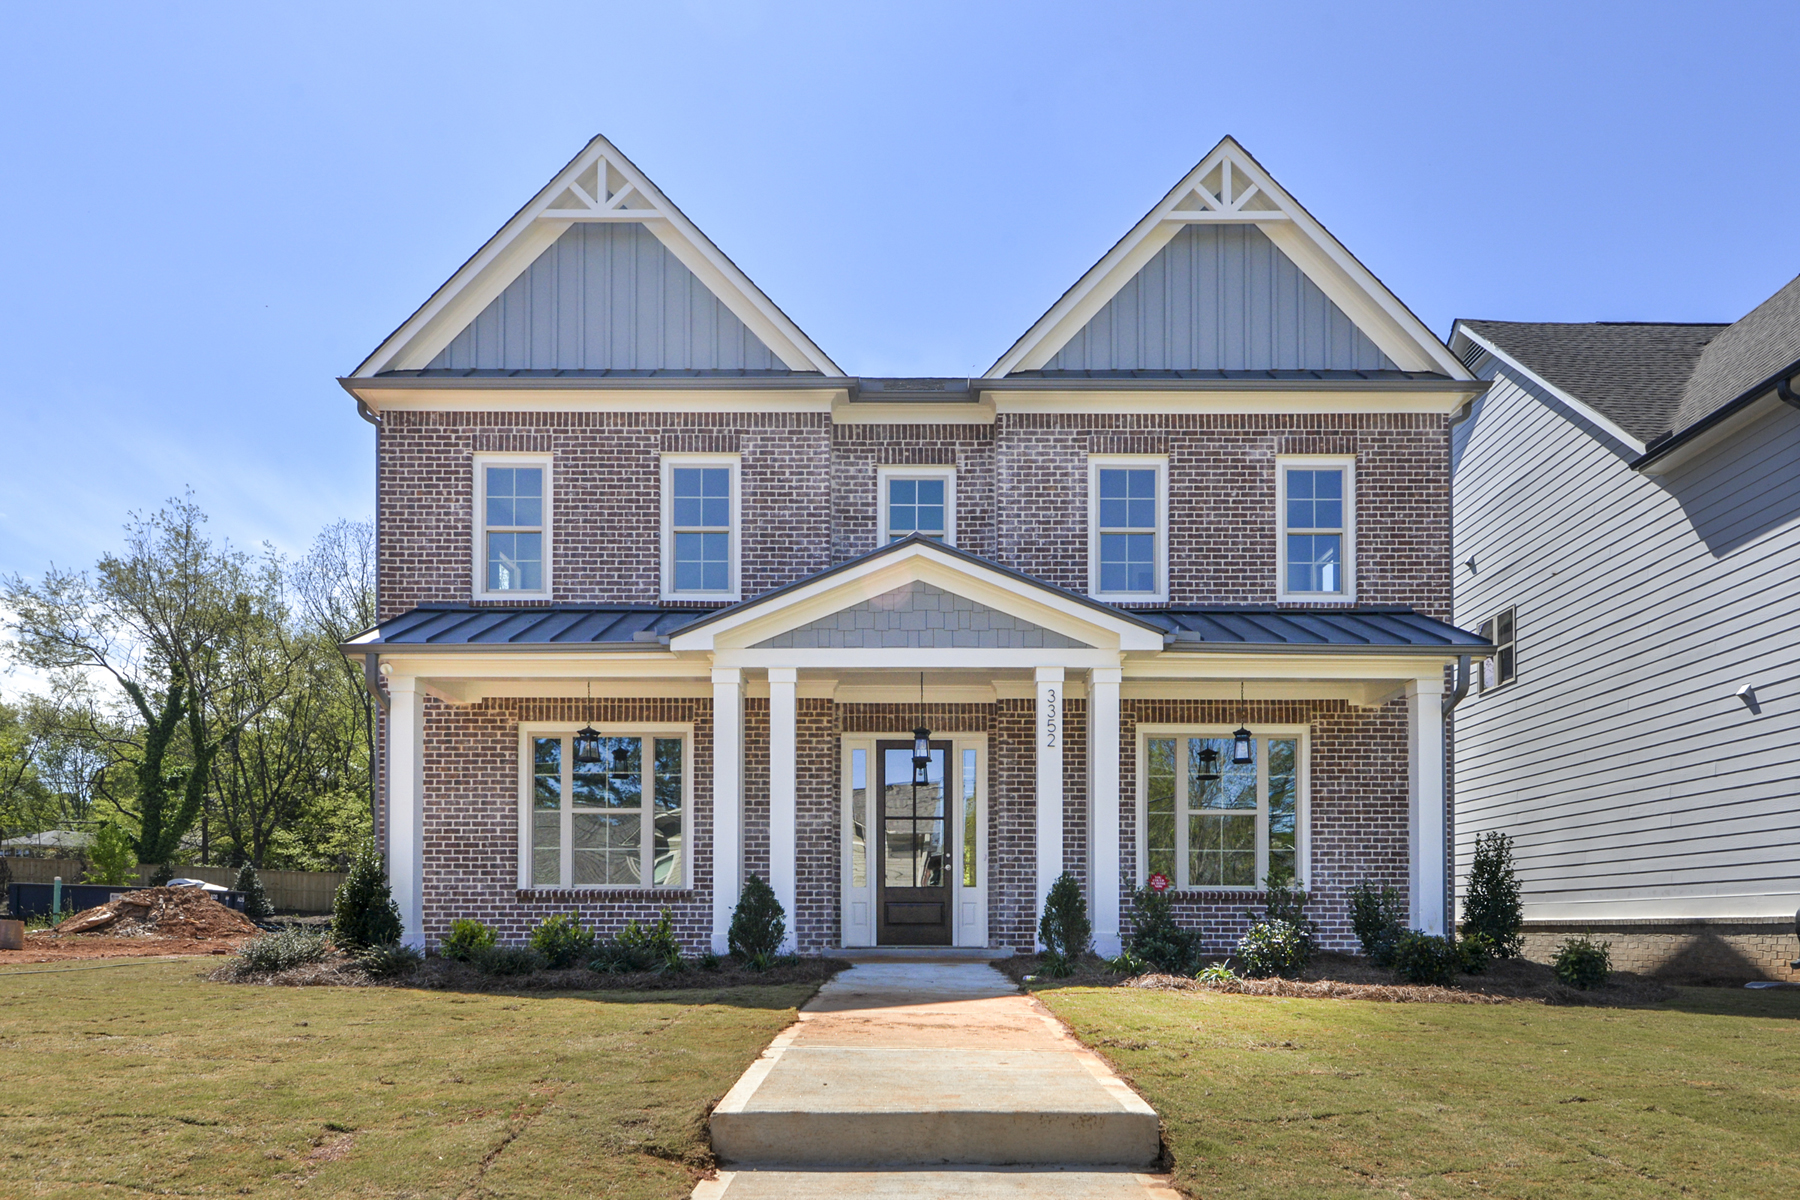 Single Family Homes for Sale at New Construction in Smyrna with Master on the Main 3352 Old Concord Road Smyrna, Georgia 30082 United States